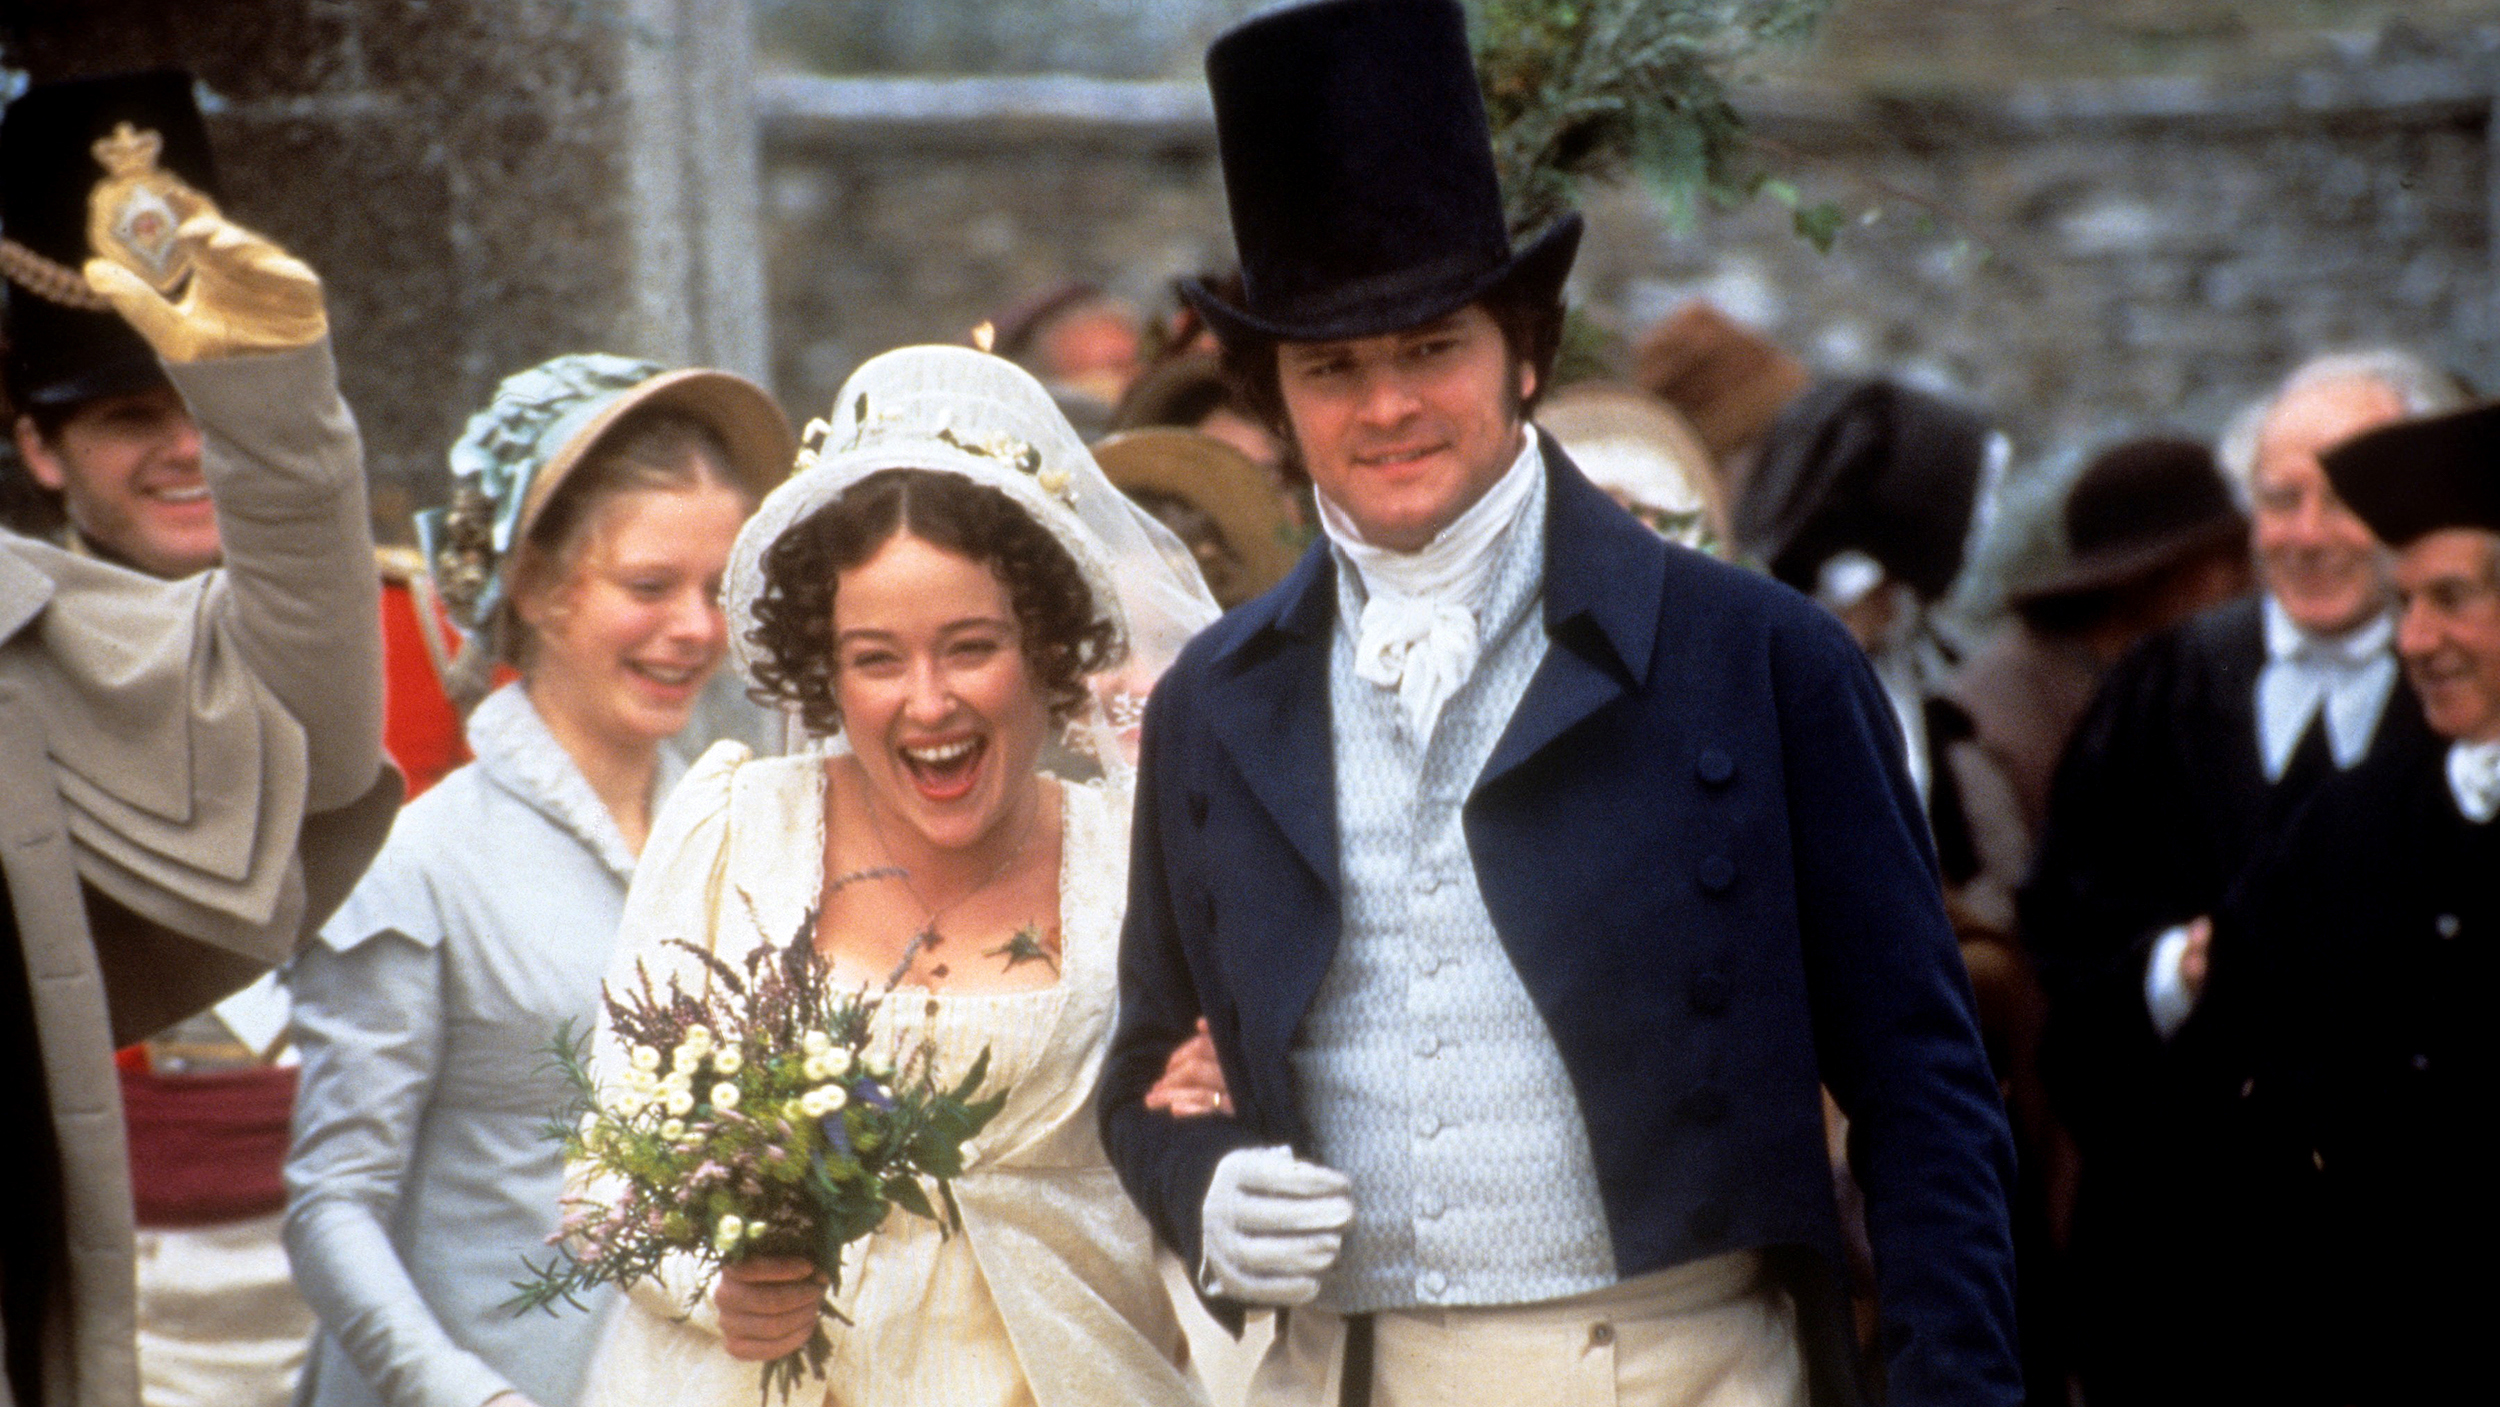 pride and prejudice miniseries turns here s why it s still   pride and prejudice miniseries turns 20 here s why it s still the best version today com